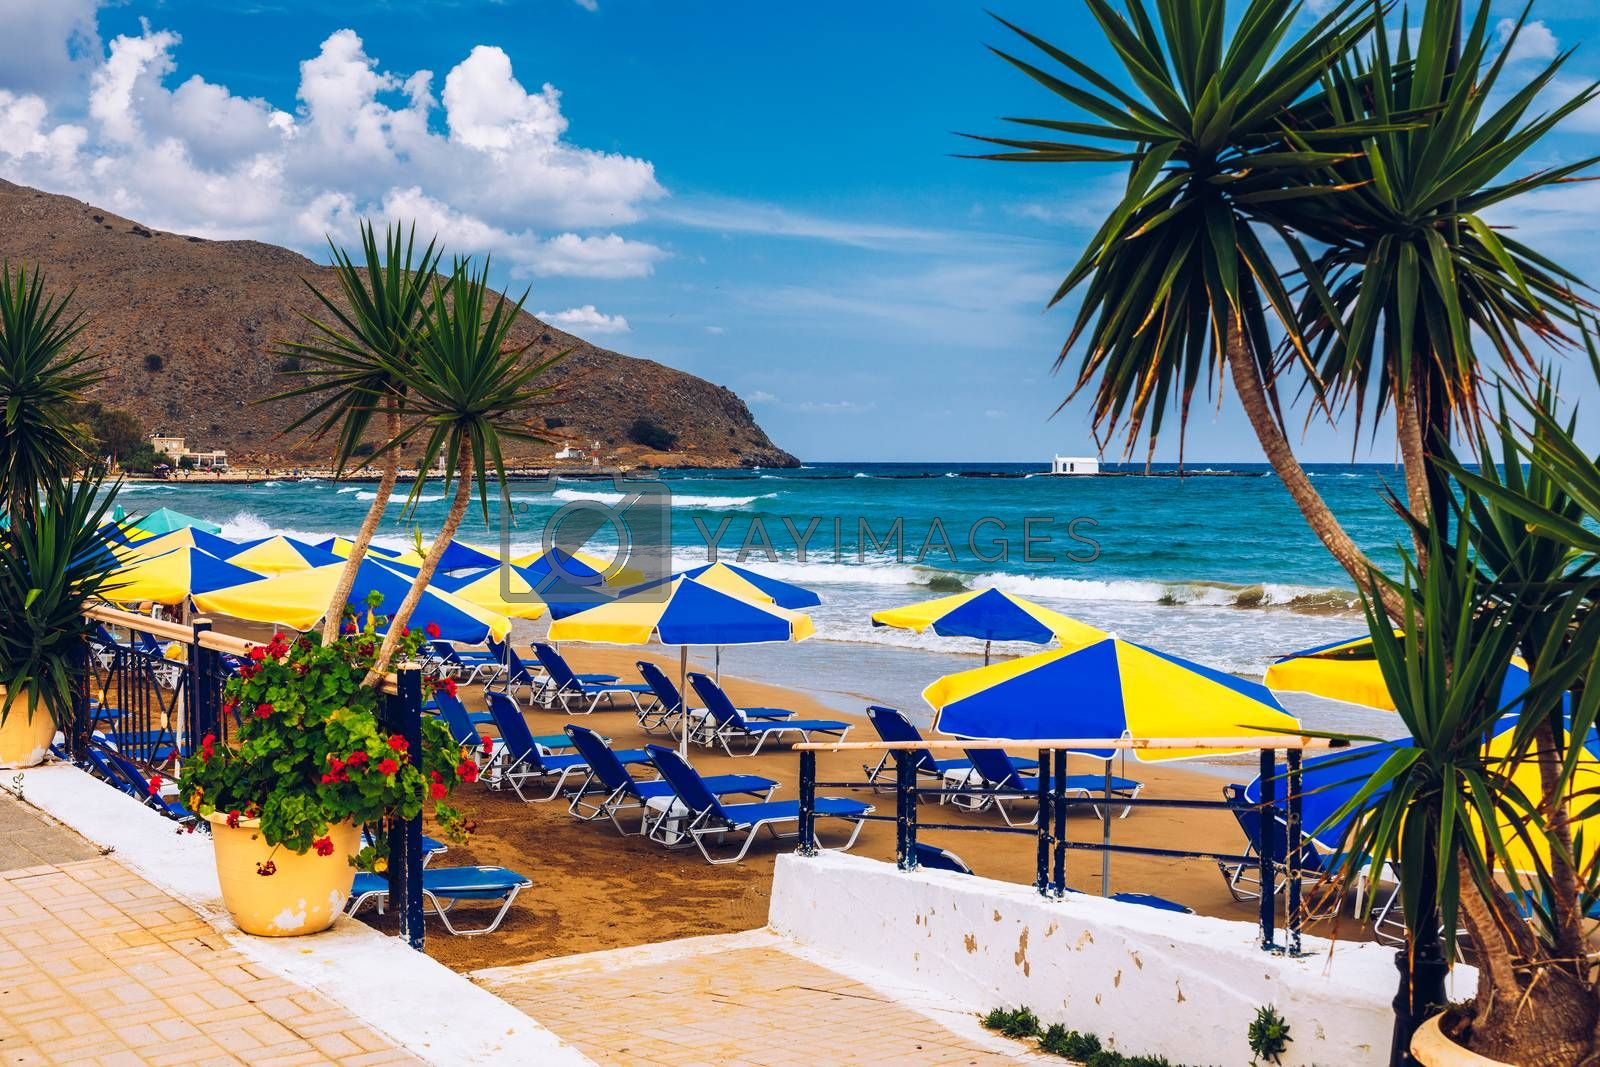 View of sunbeds awaiting tourists at the Greek island resort of Georgioupolis on Crete north coast. Georgioupoli is a resort village and former municipality in the Chania regional unit, Crete, Greece.